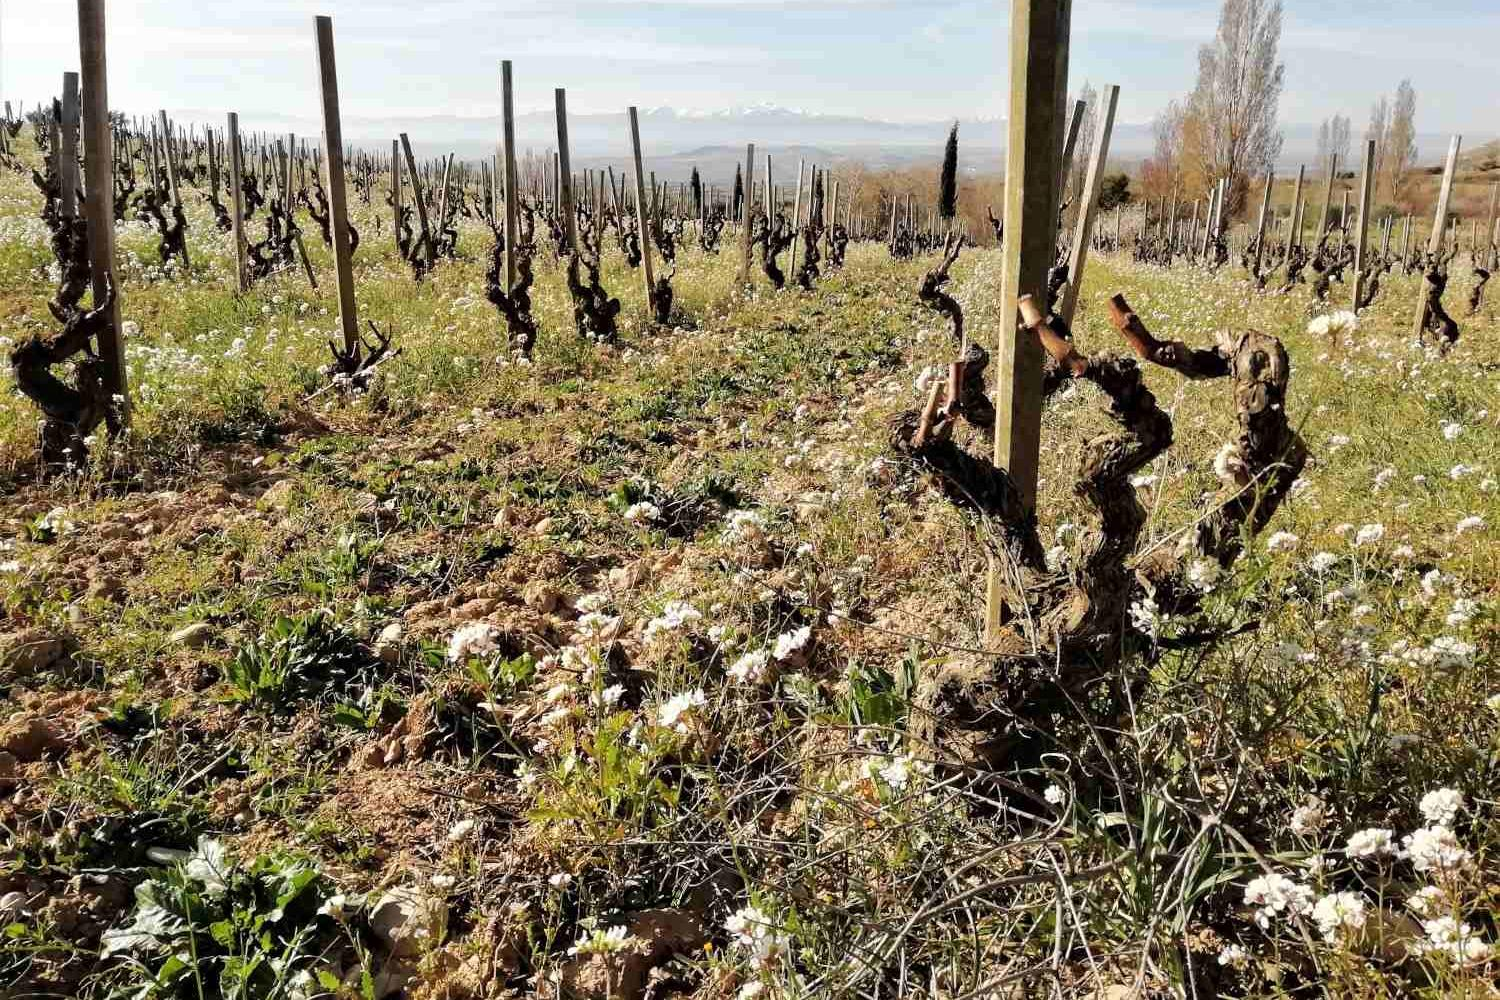 Terroir in Rioja alavesa